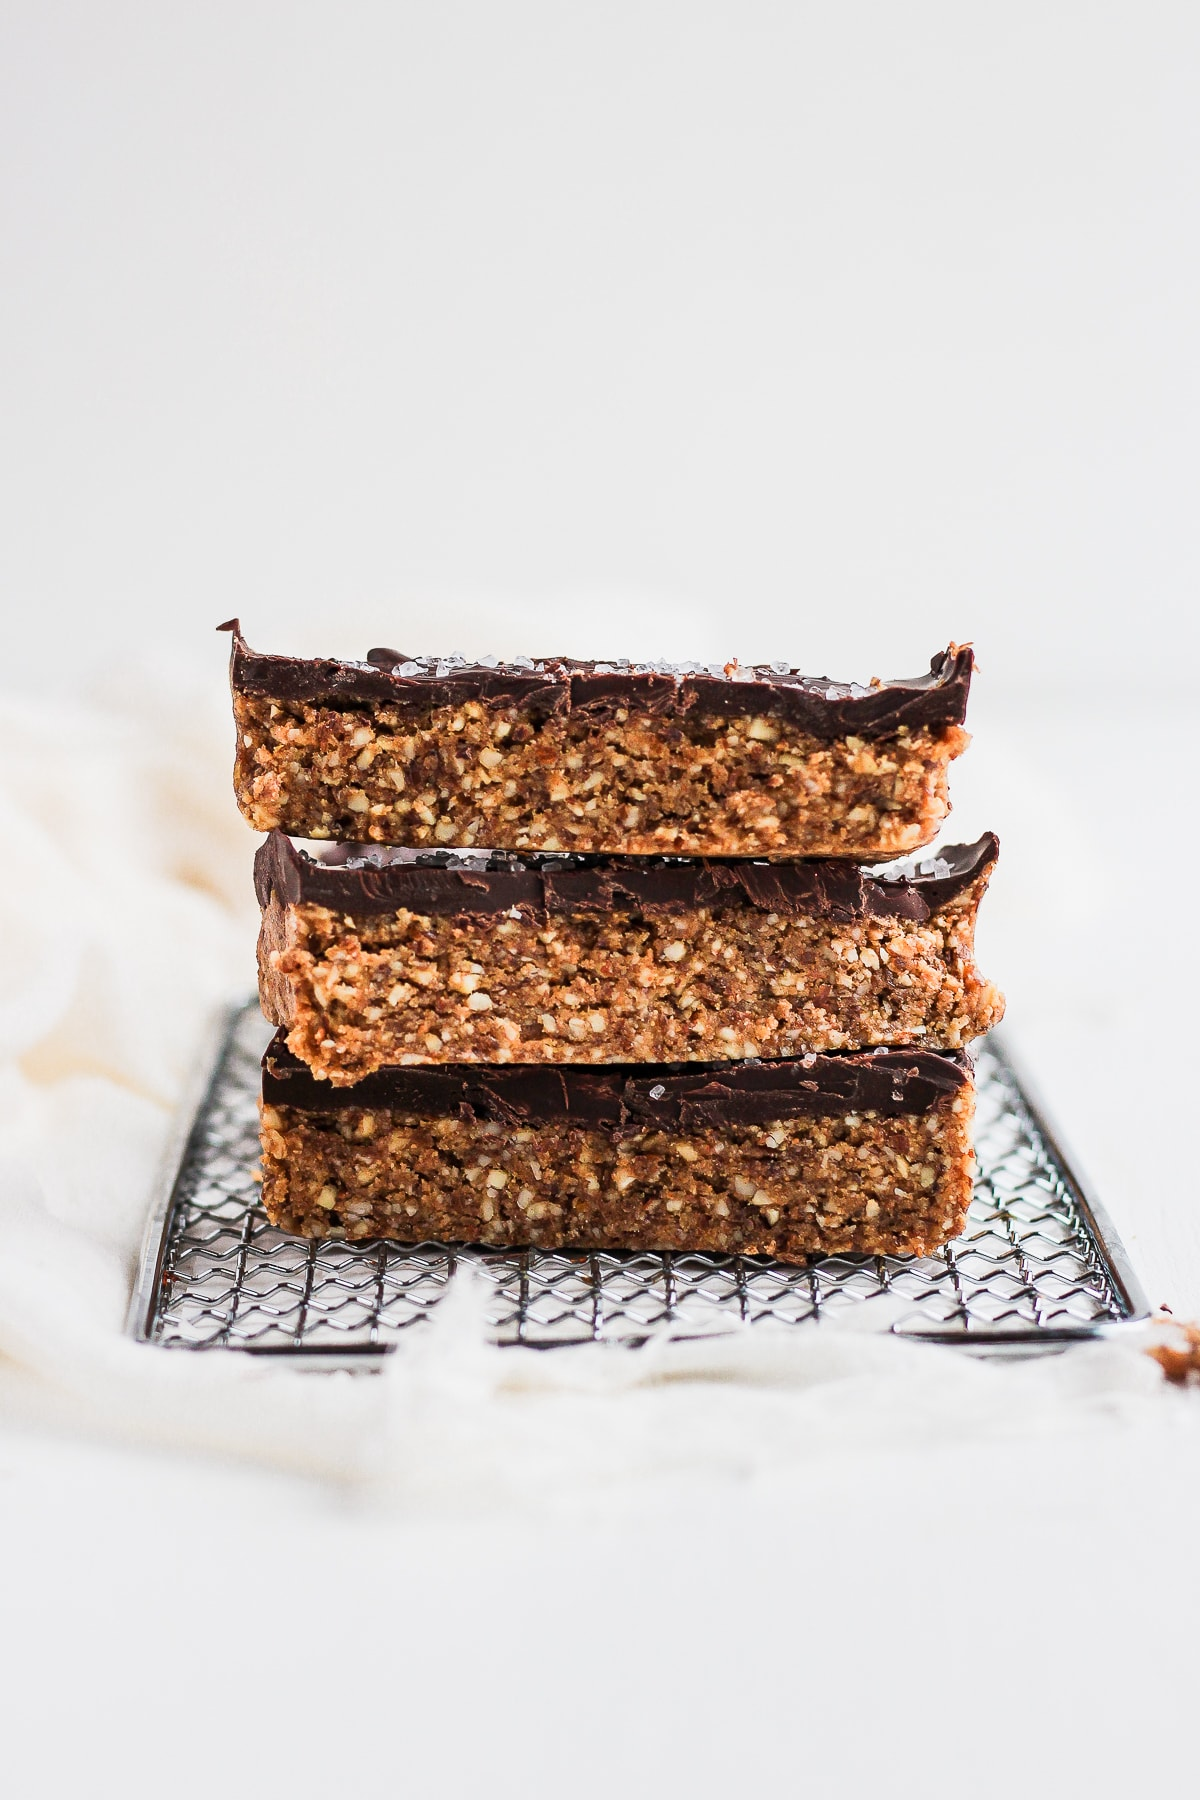 Raw Cashew Chocolate Breakfast Bars - an easy and delicious breakfast that requires no baking! #raw #vegan #plantbased #breakfast #easybreakfast